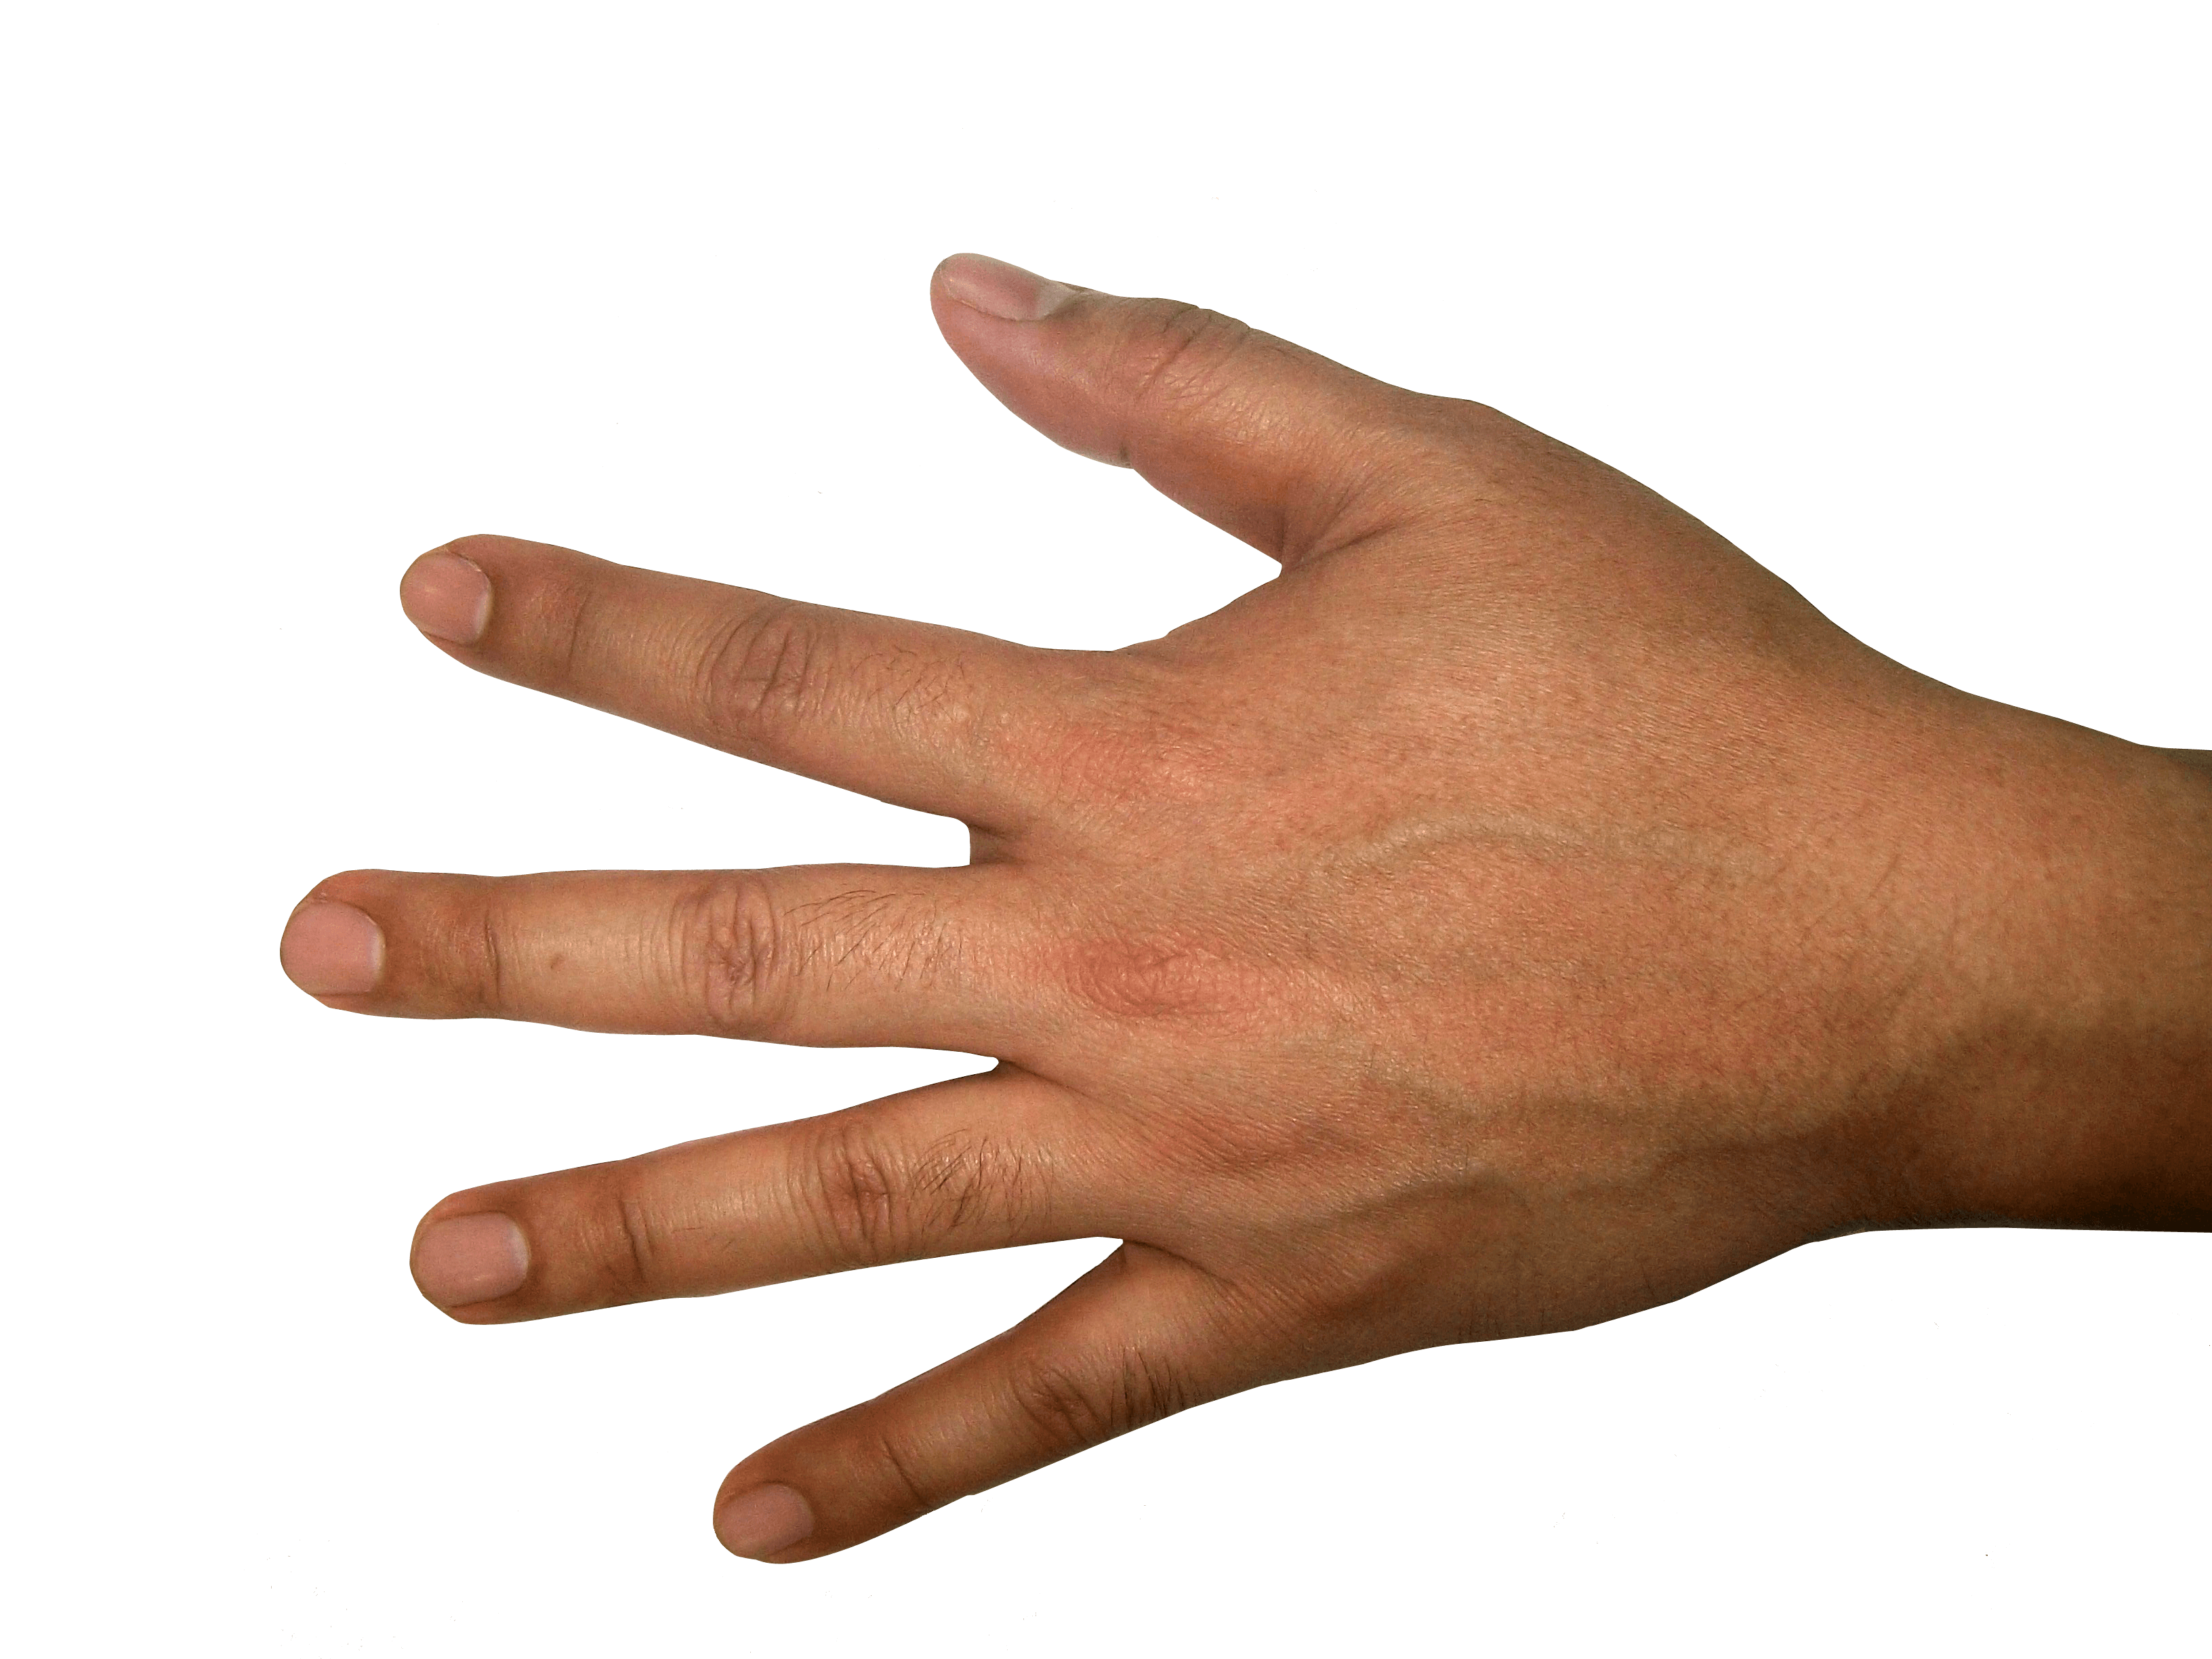 Download Hands Png Finger Hand Image